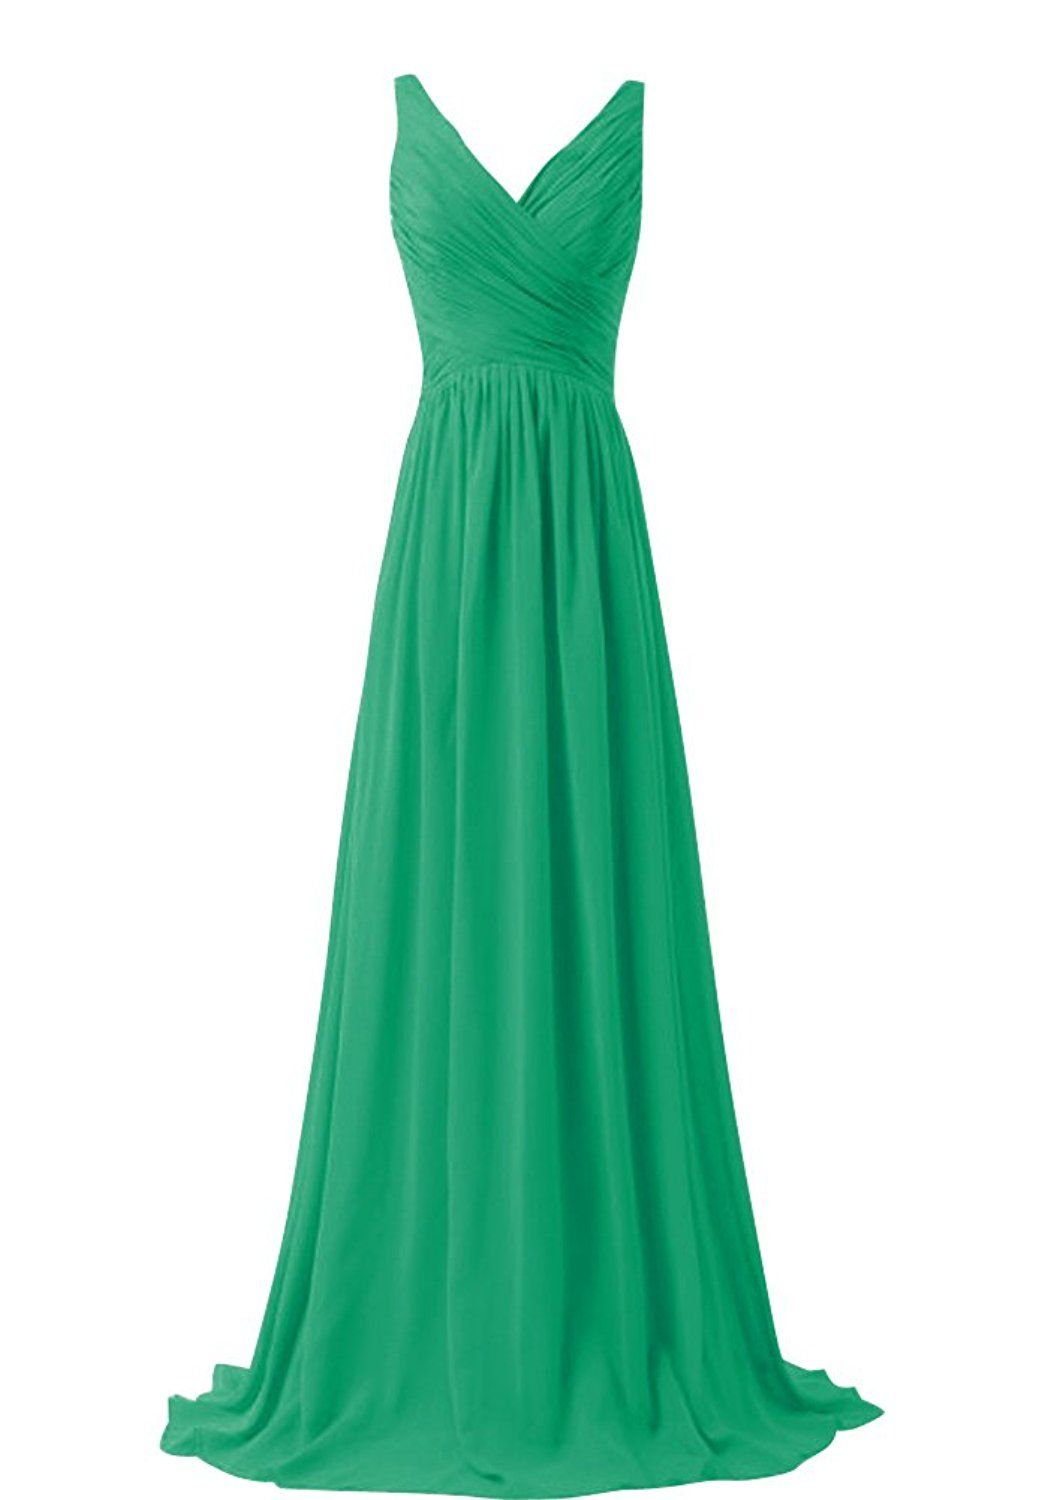 WeiYin Women\'s Chiffon V-neck Sleeveless Bridemaid Dresses Mint ...